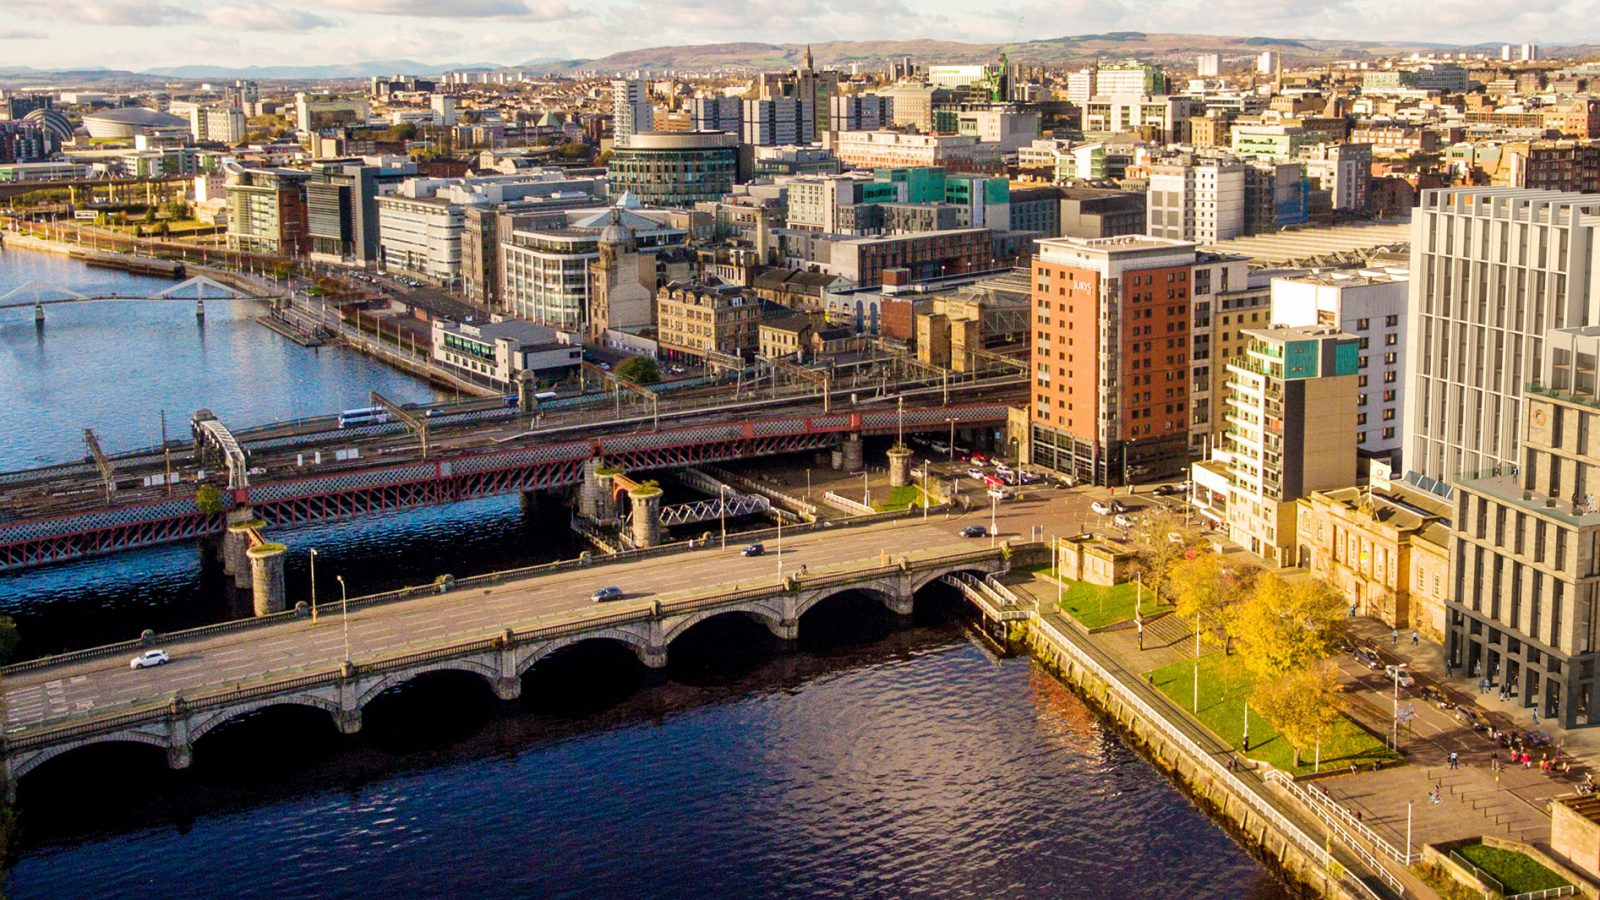 Aerial view of the St Enoch Quarter and the river Clyde